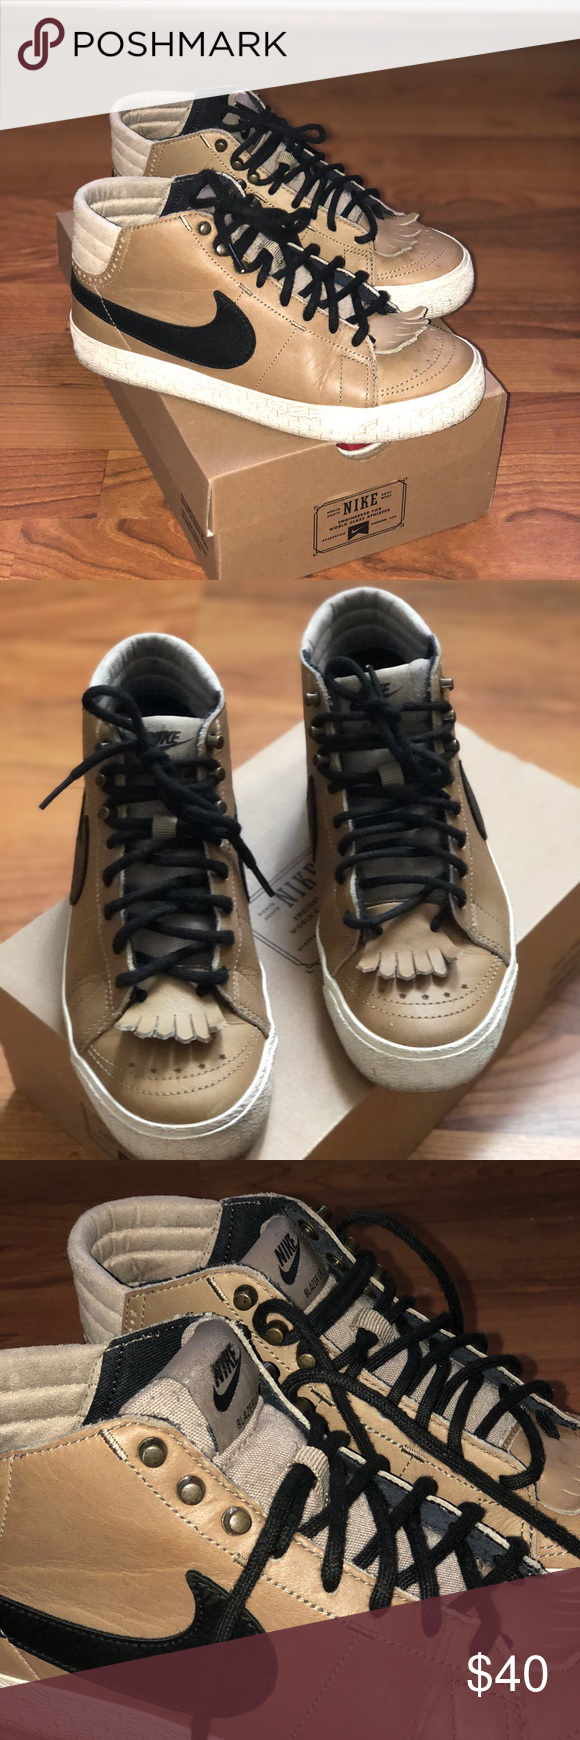 1a4ec17209 Women Nike Blazer Mid LR Women Nike Blazer Mid LR Khaki and Black. Women  size 6.5. Has a fringe detail in the front. Some scuff but I will clean  before ...